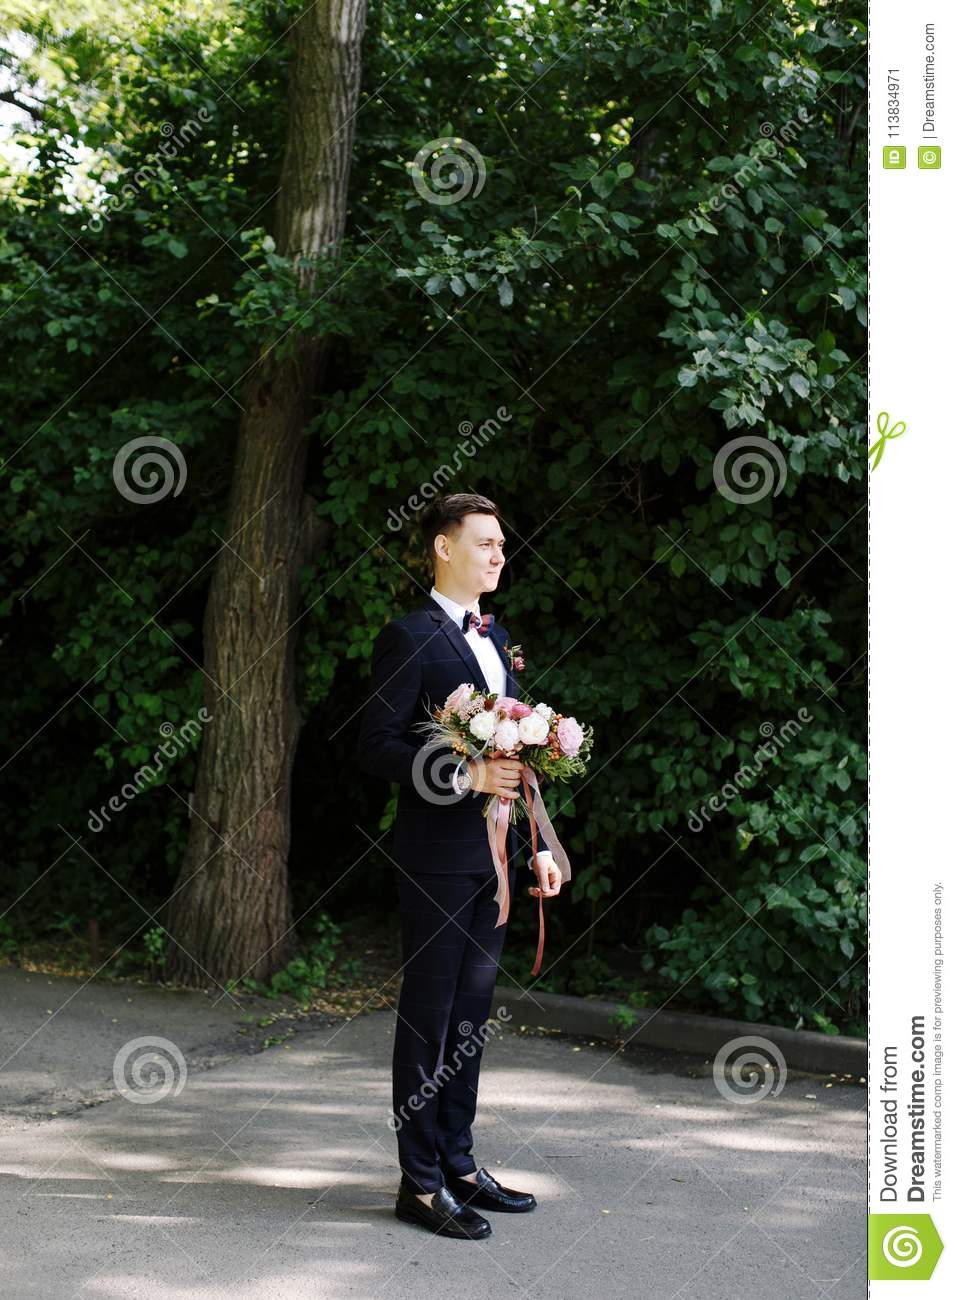 Happy smile bridegroom is waiting for the bride with amazing bouquet of flowers in classic suit with bow tie in green